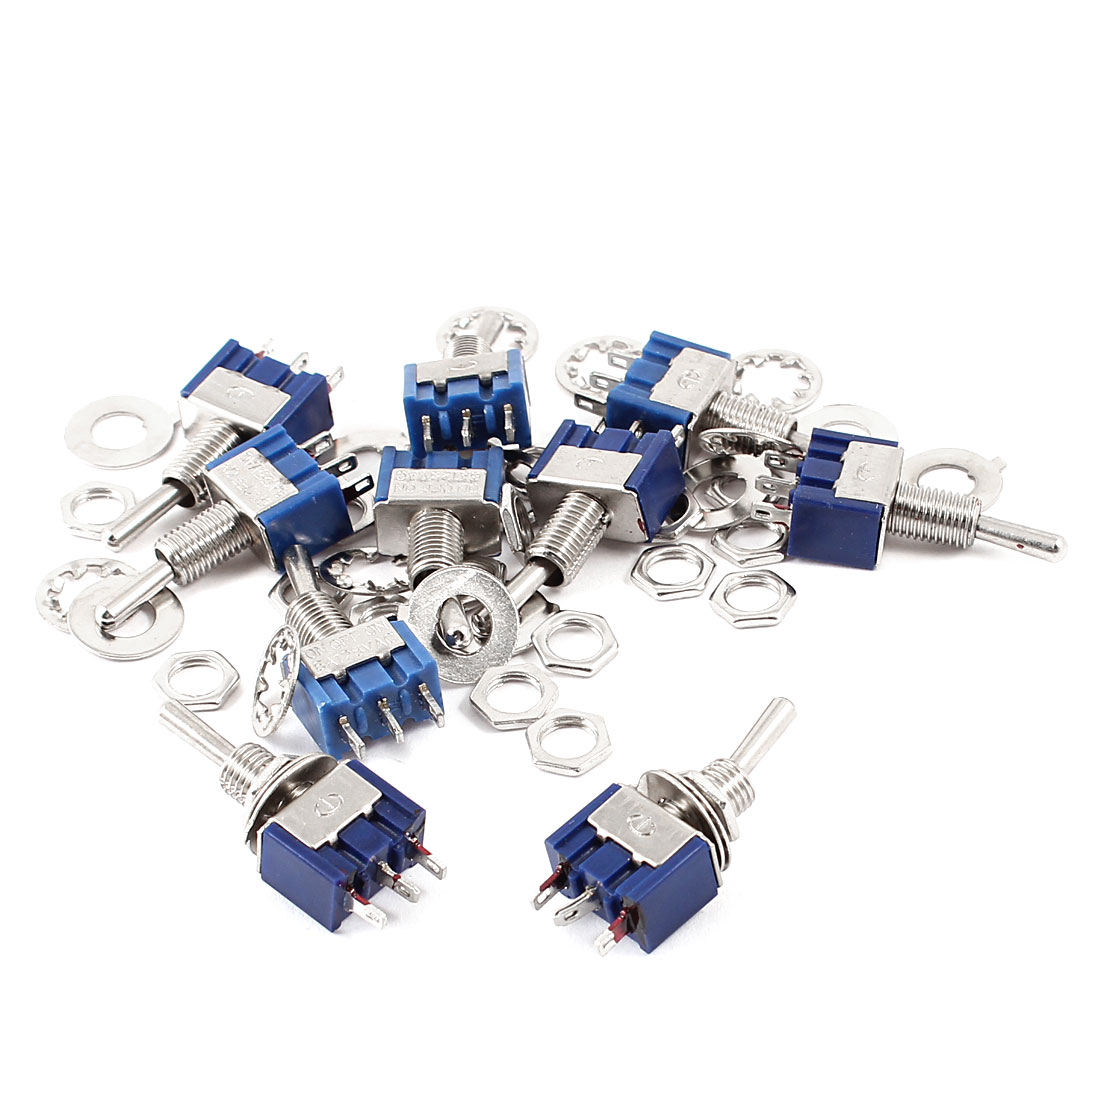 AC 125V 6A 3 Terminals Latching SPDT 3 Position On/Off/On Toggle Switch Blue 10 Pcs